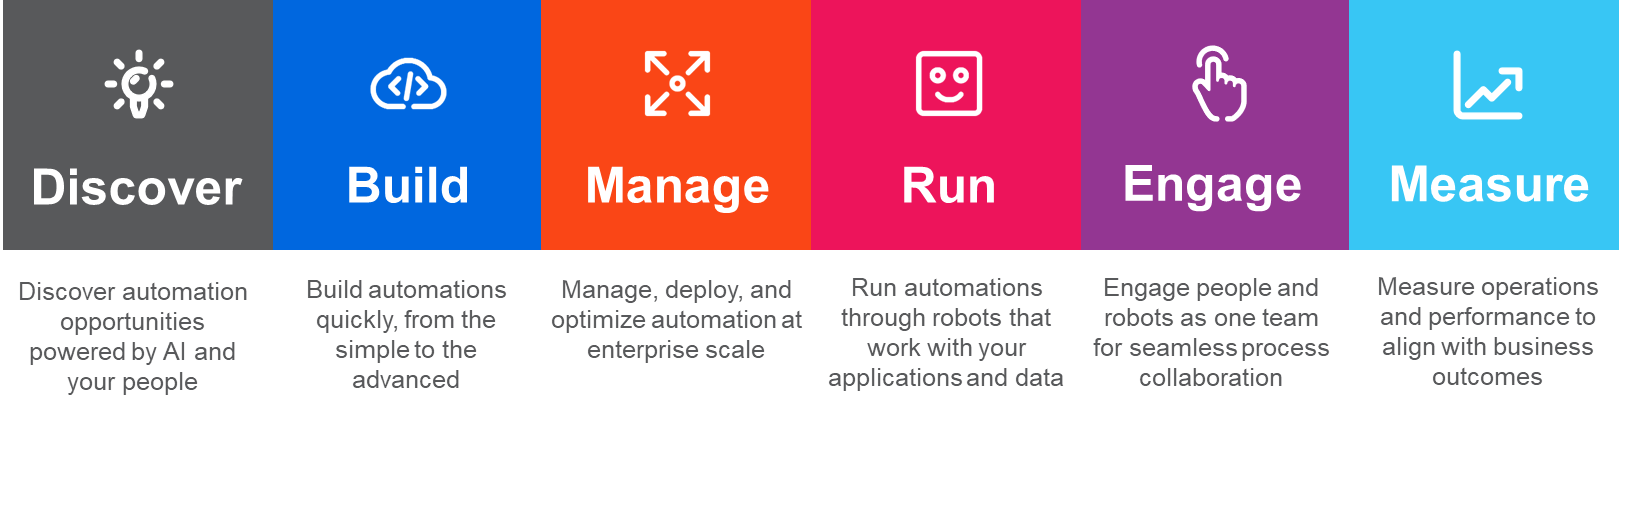 automation-lifecycle-uipath-2019-lts-release